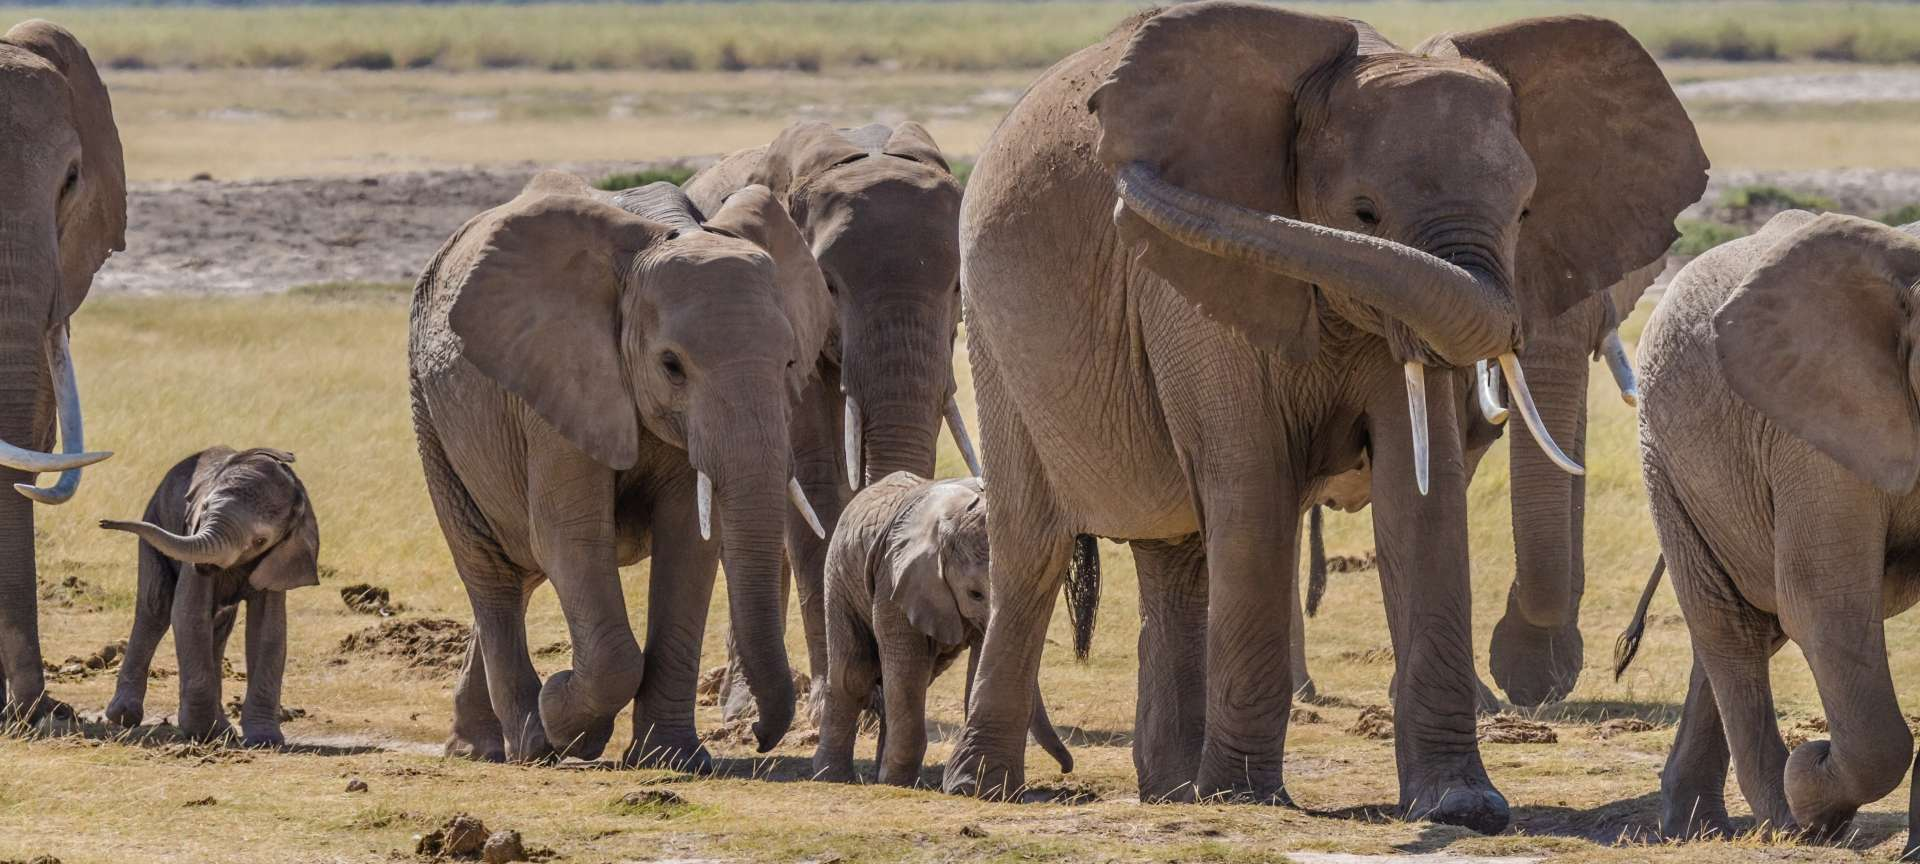 Elephant in Botswana are a sight to behold